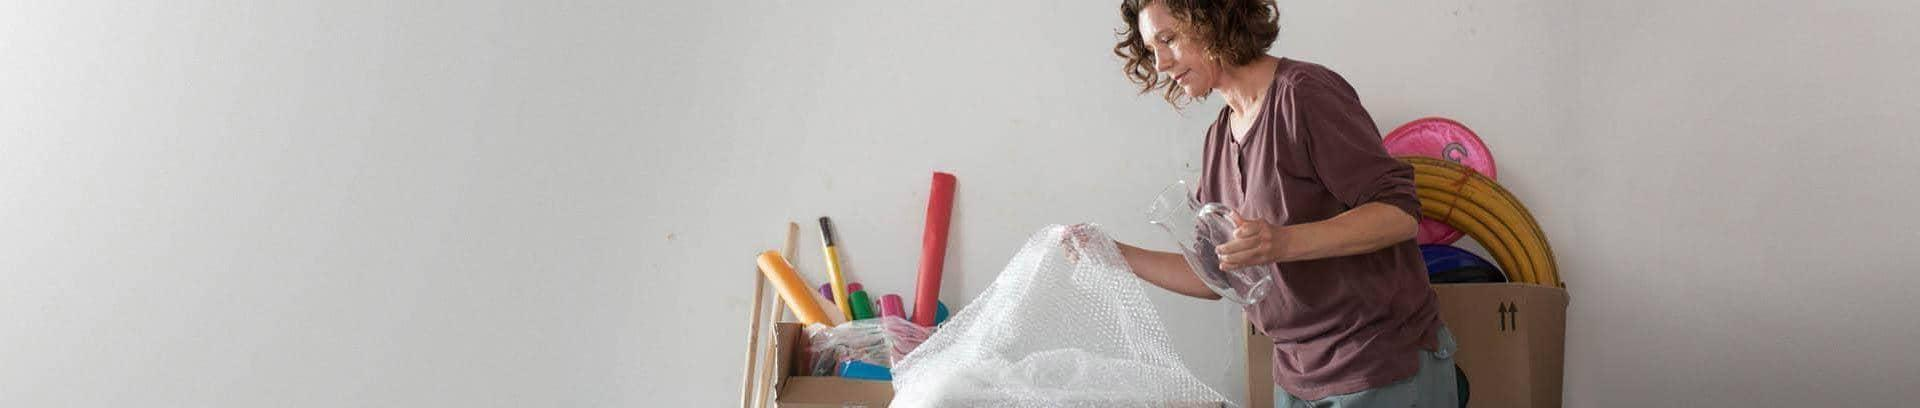 Woman packing a vase in bubble wrap, ready to move house